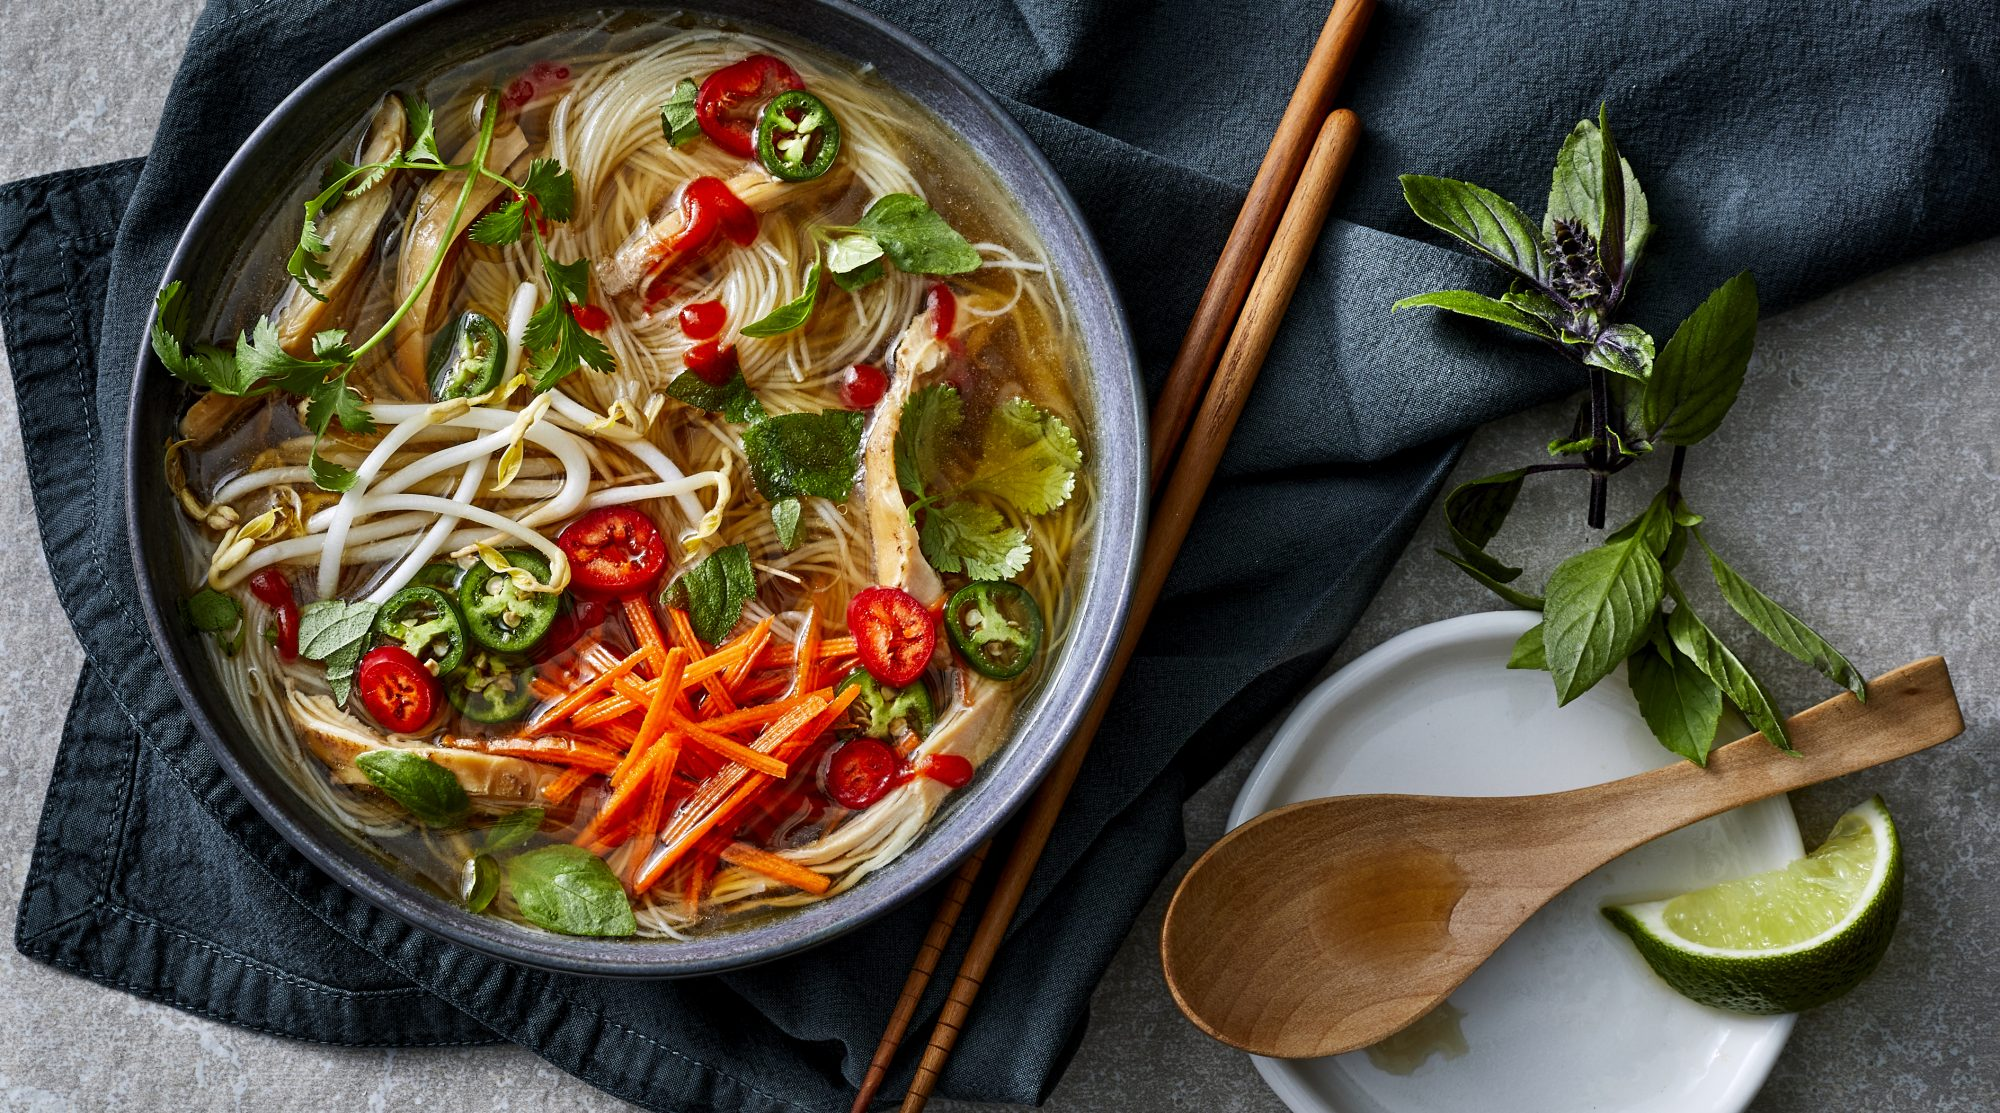 How to Make the Most Delicious Pho in Your Instant Pot